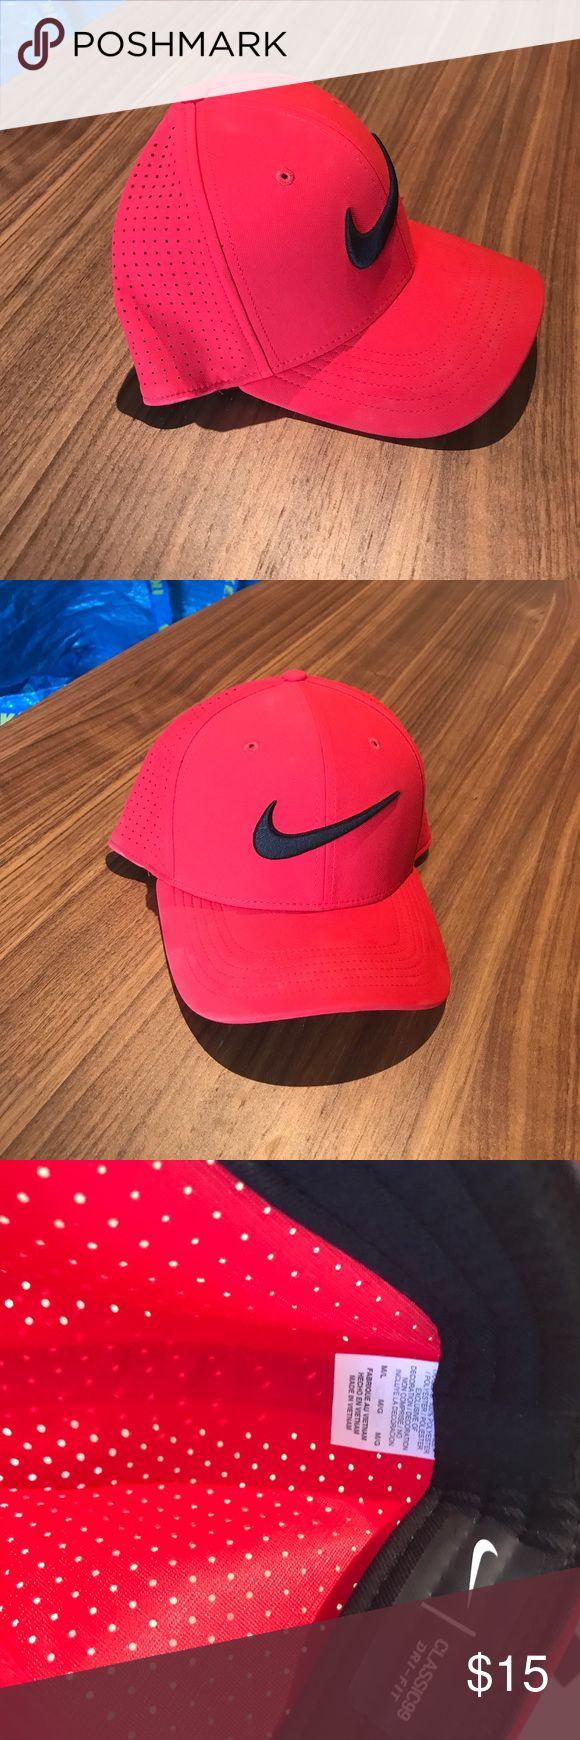 Nike Dri-Fit hat M/L Nike hat in excellent shape, only worn 2-3 times. Practically brand new. Flex fit hat Size M/L Nike Accessories Hats